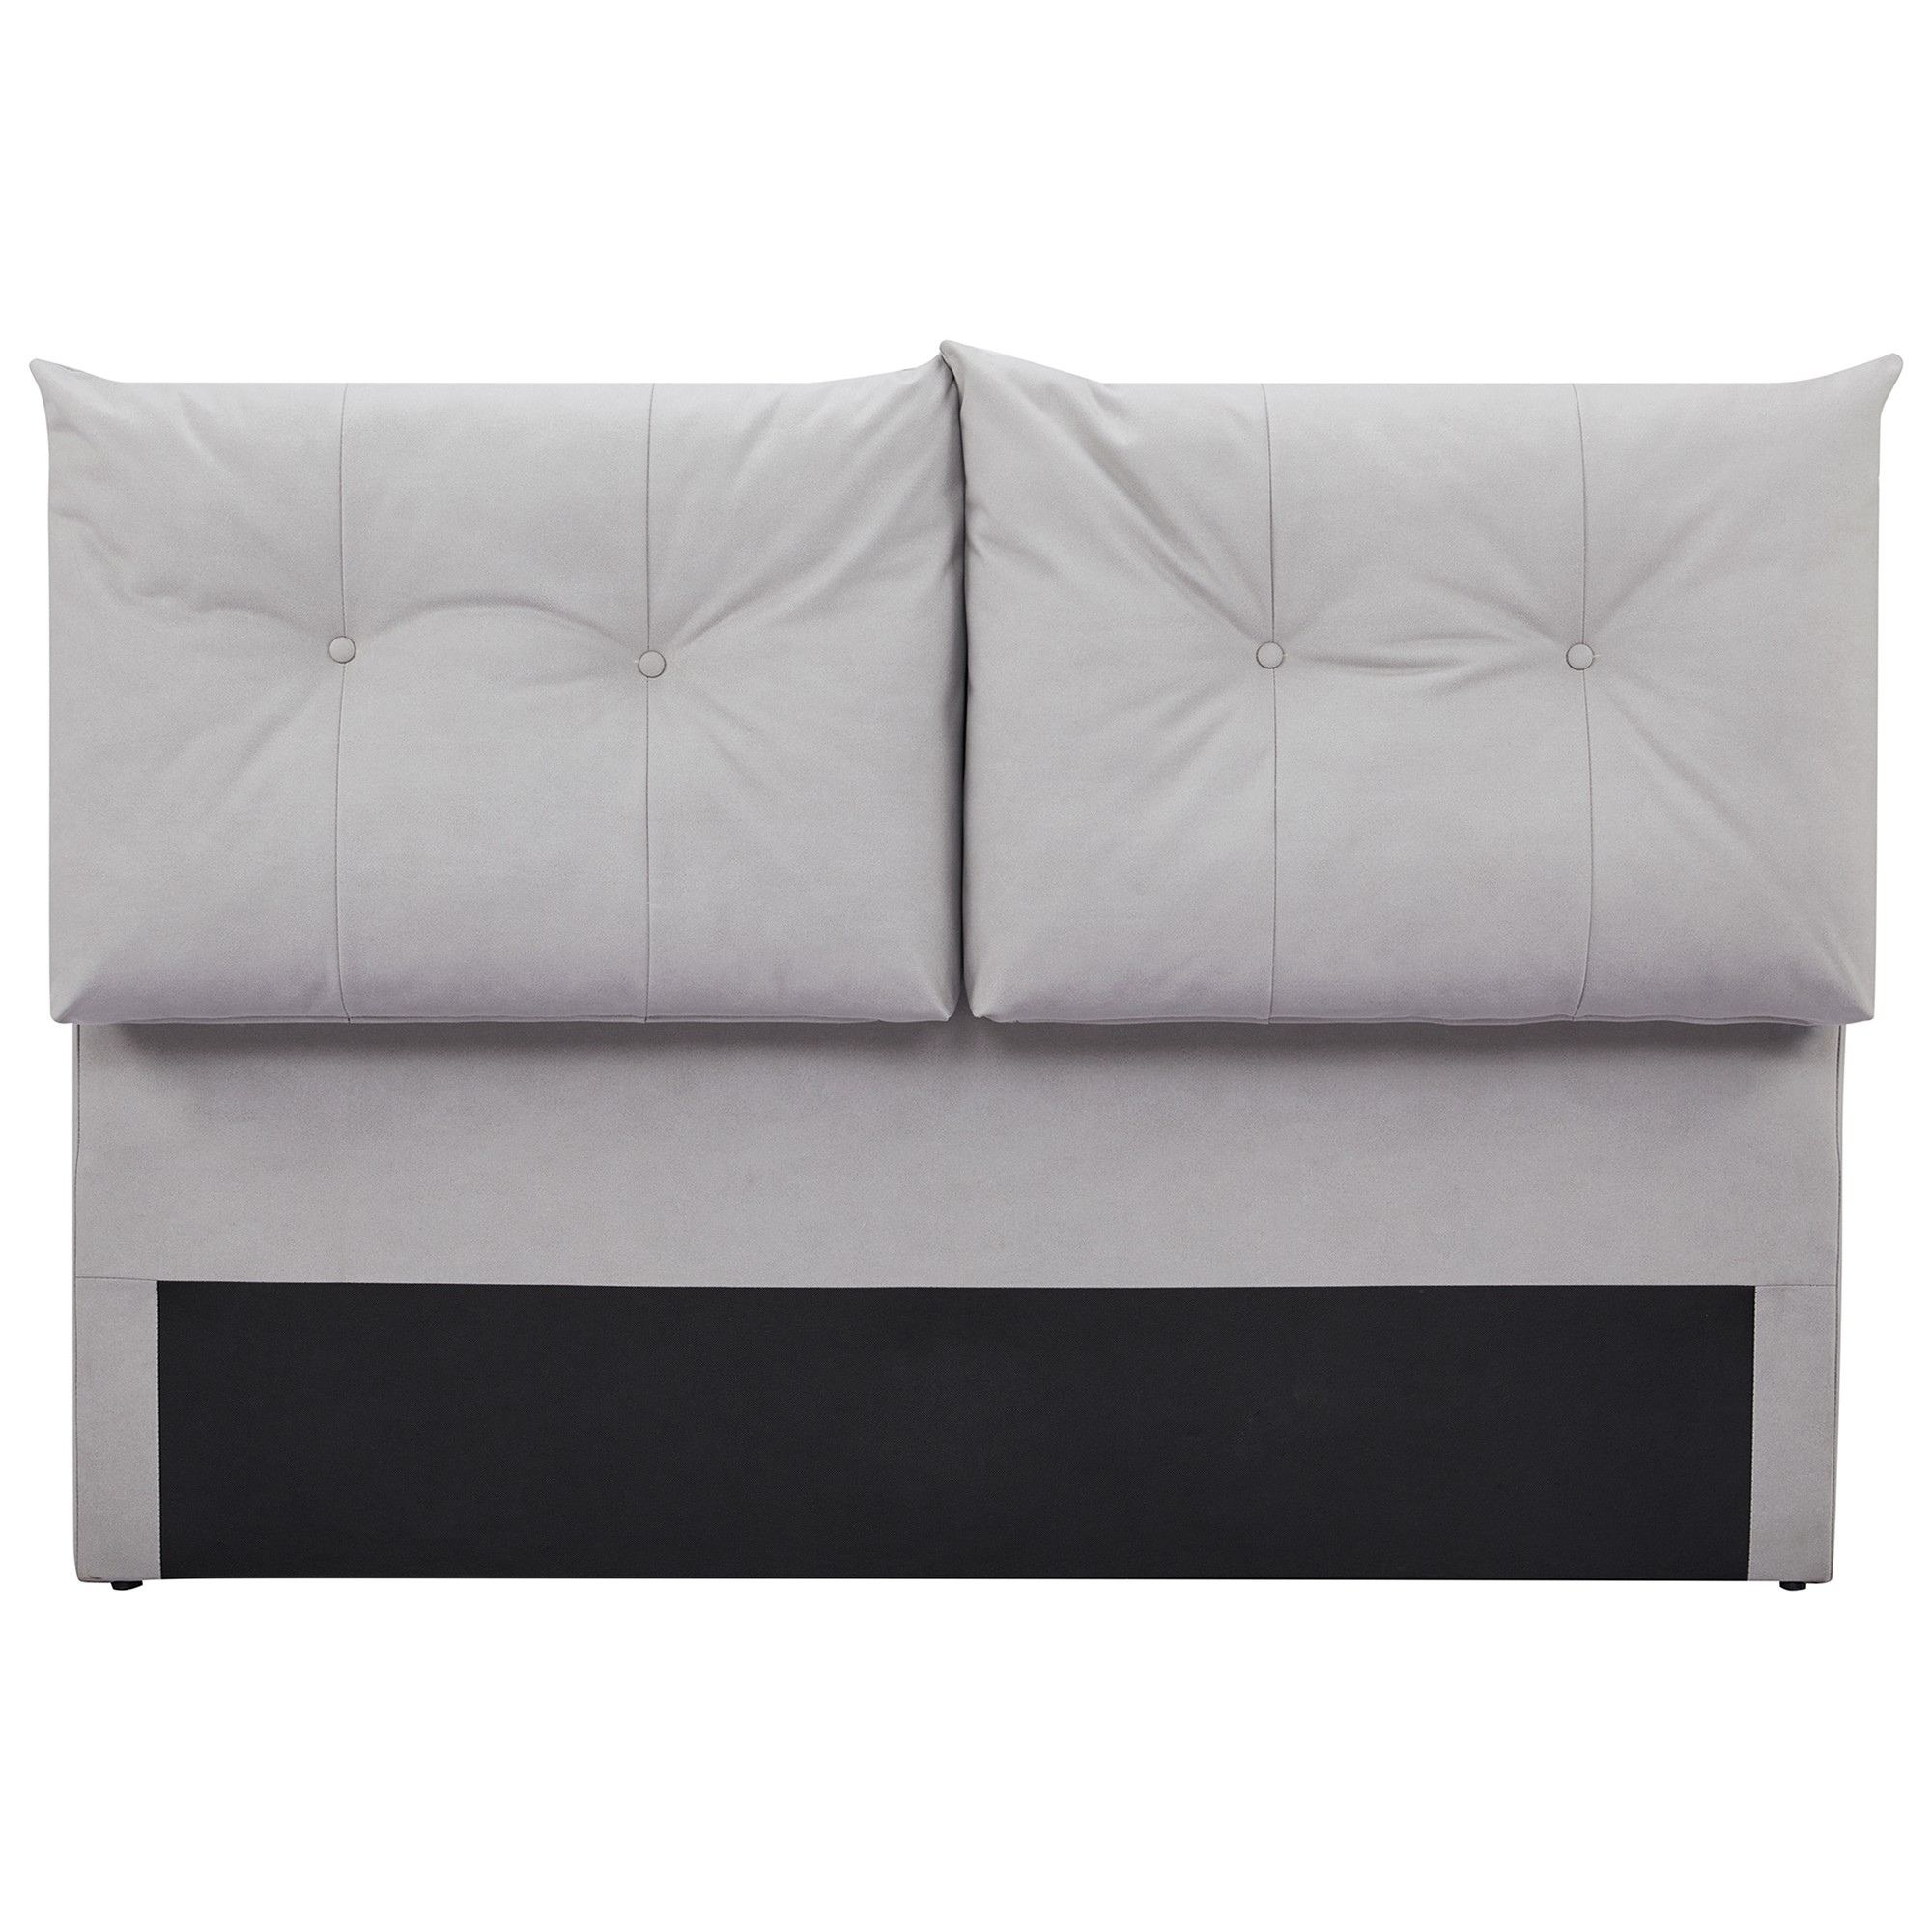 Fabric Bed Headboard, Queen